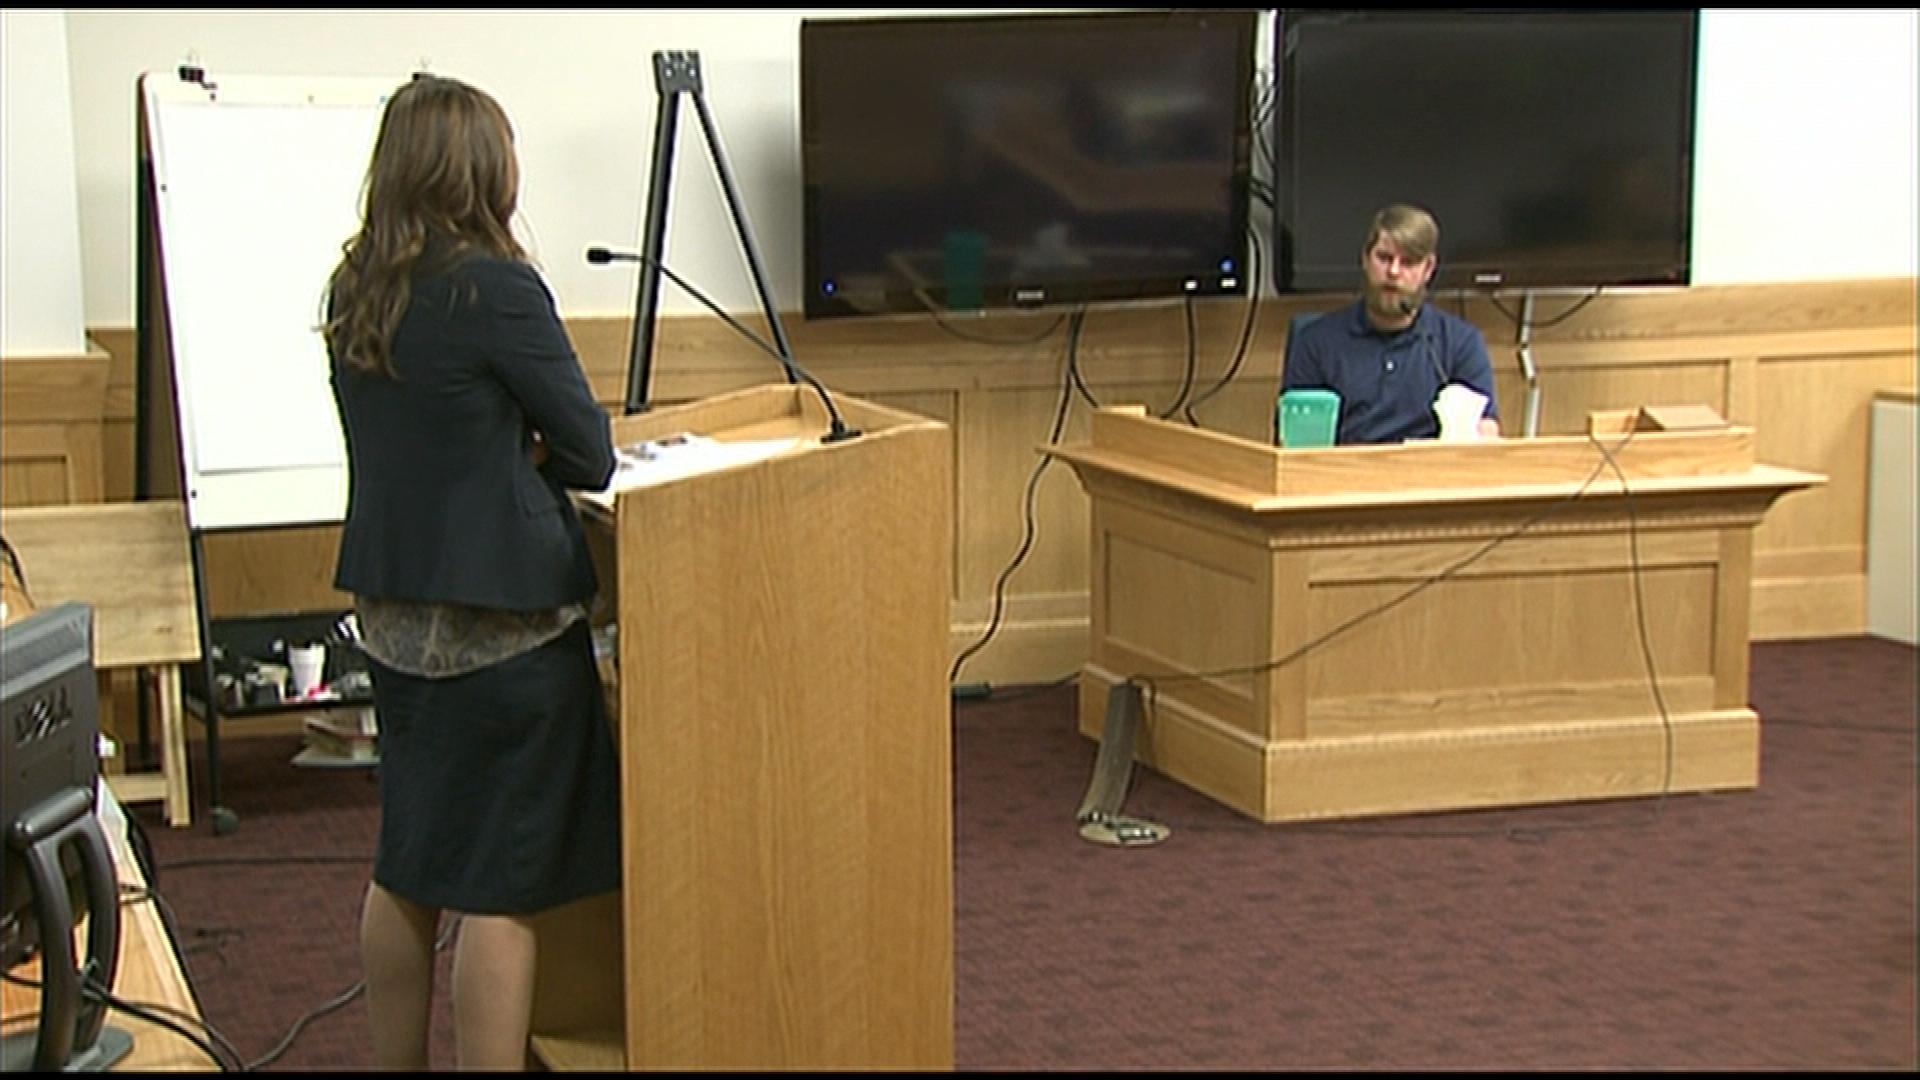 Nick Glover in court on Monday (credit: CBS)